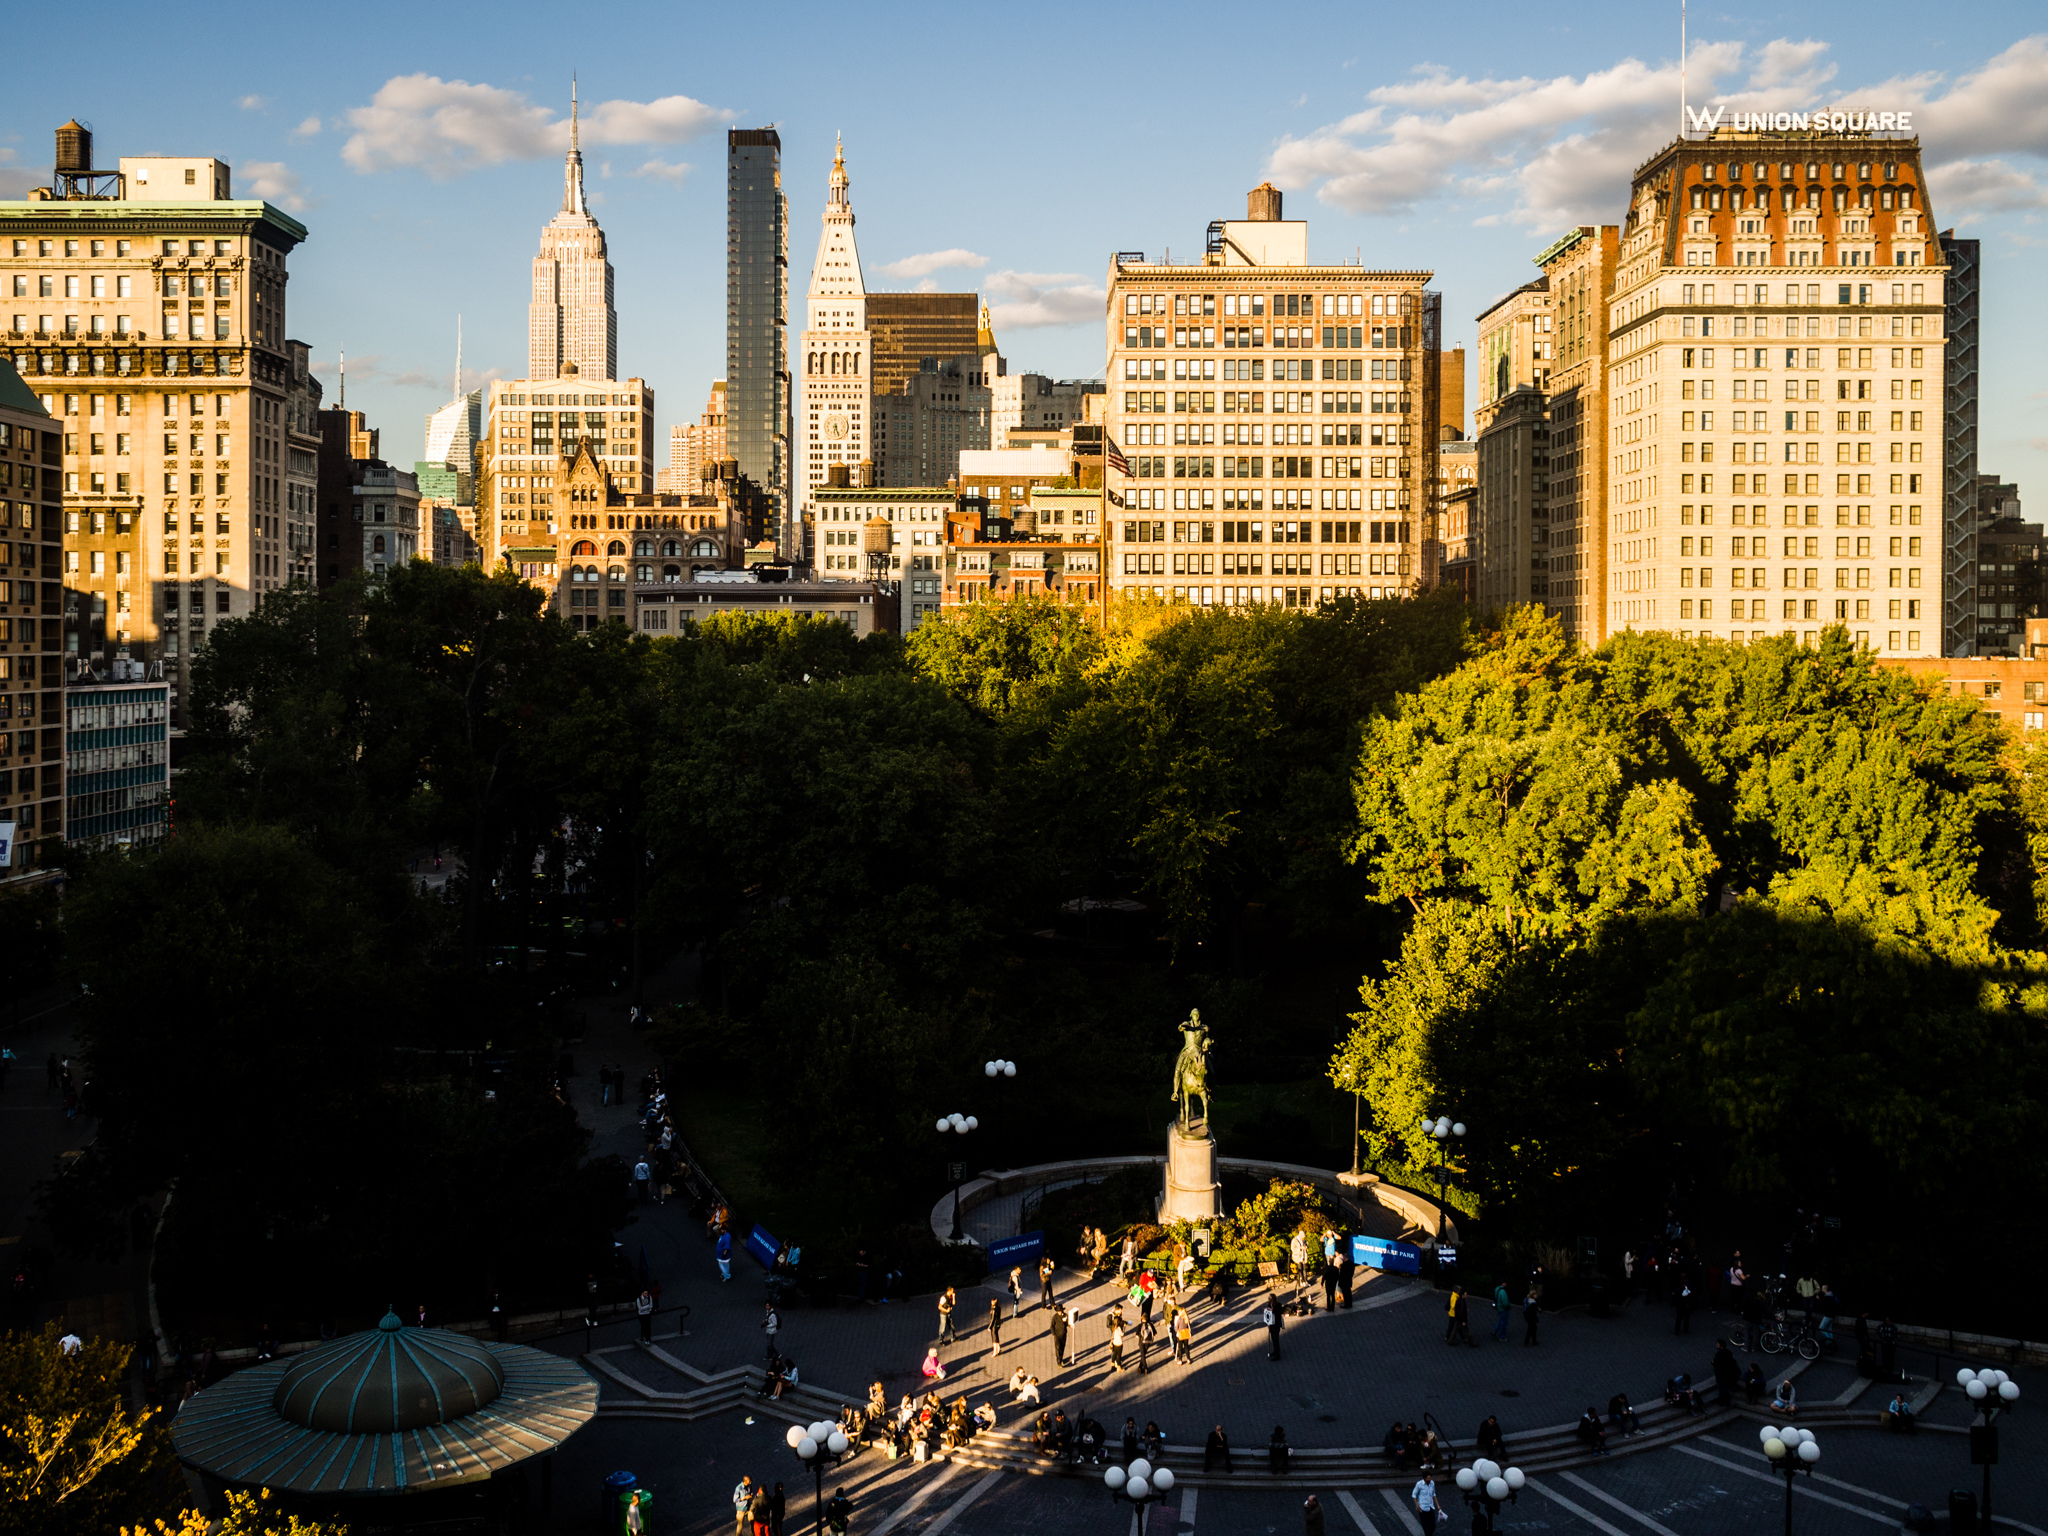 Union square park urban park in new york city thousand wonders union square park sciox Image collections